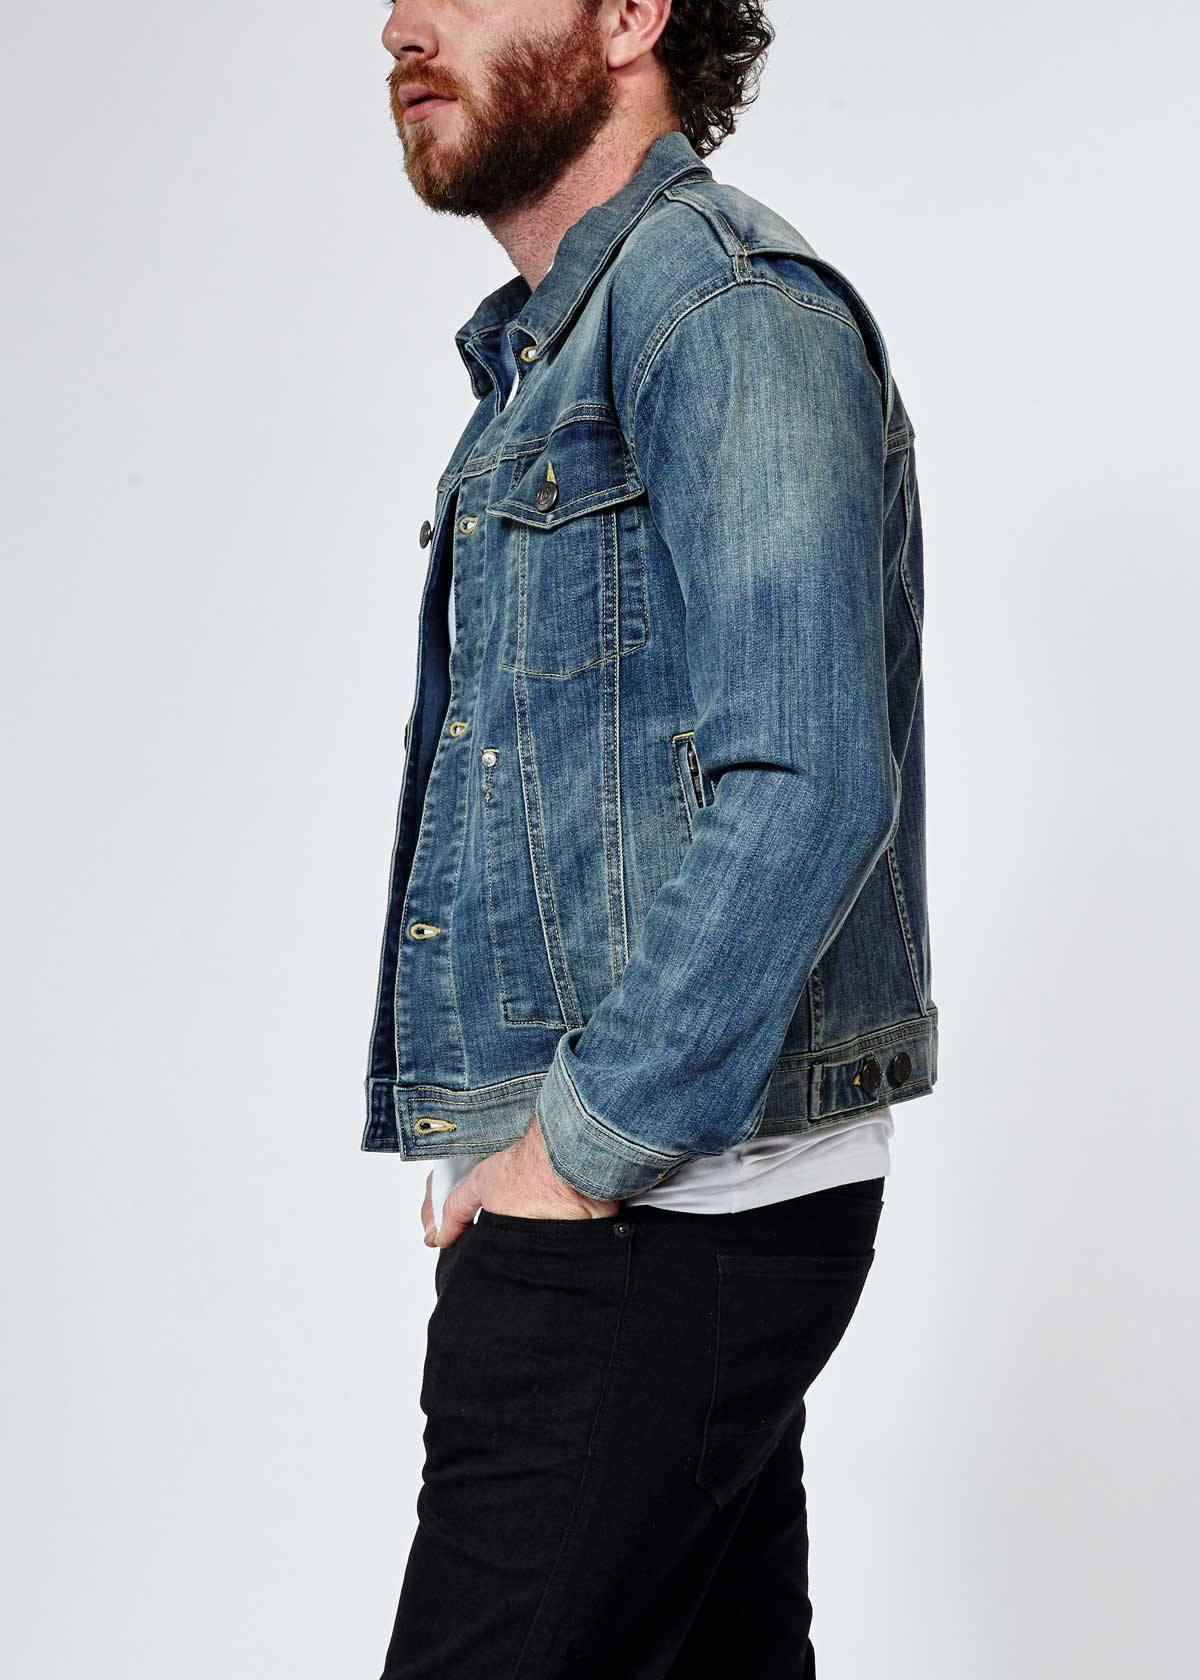 Stay Dry Trucker Jacket - Vintage